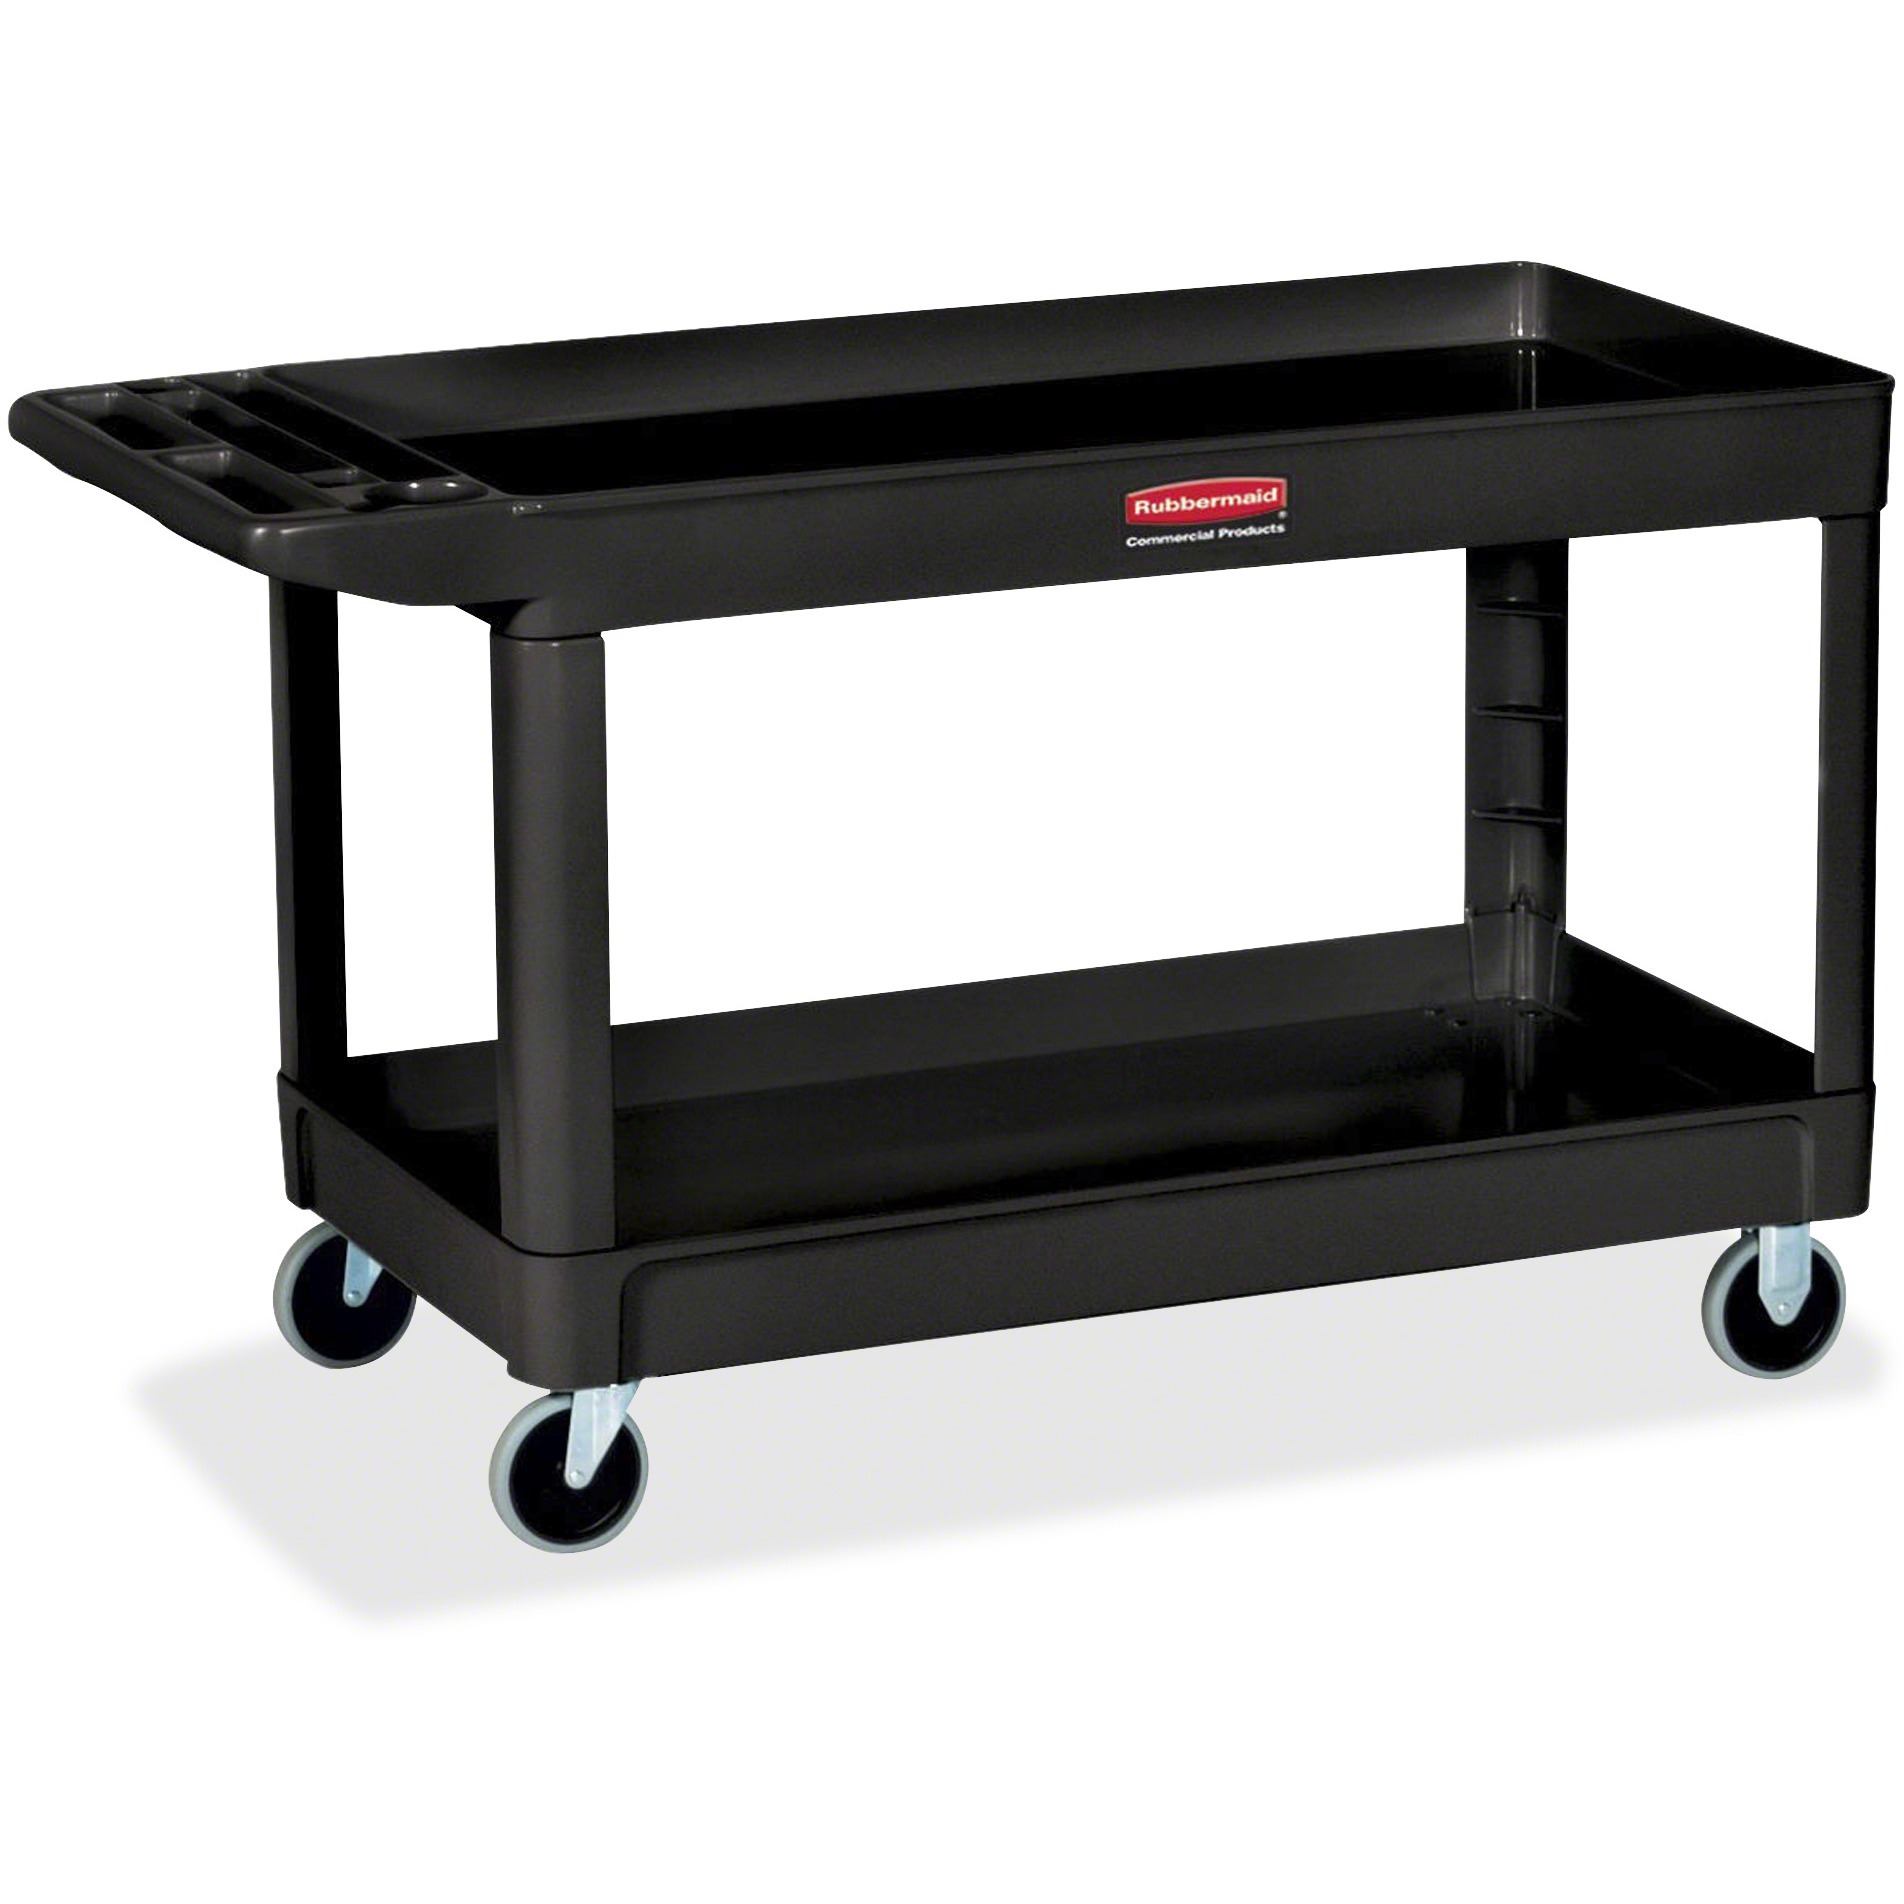 "Rubbermaid Commercial, RCP9T6700BLA, 4"" Casters 2-shelf Utility Cart, 1 Each, Black"